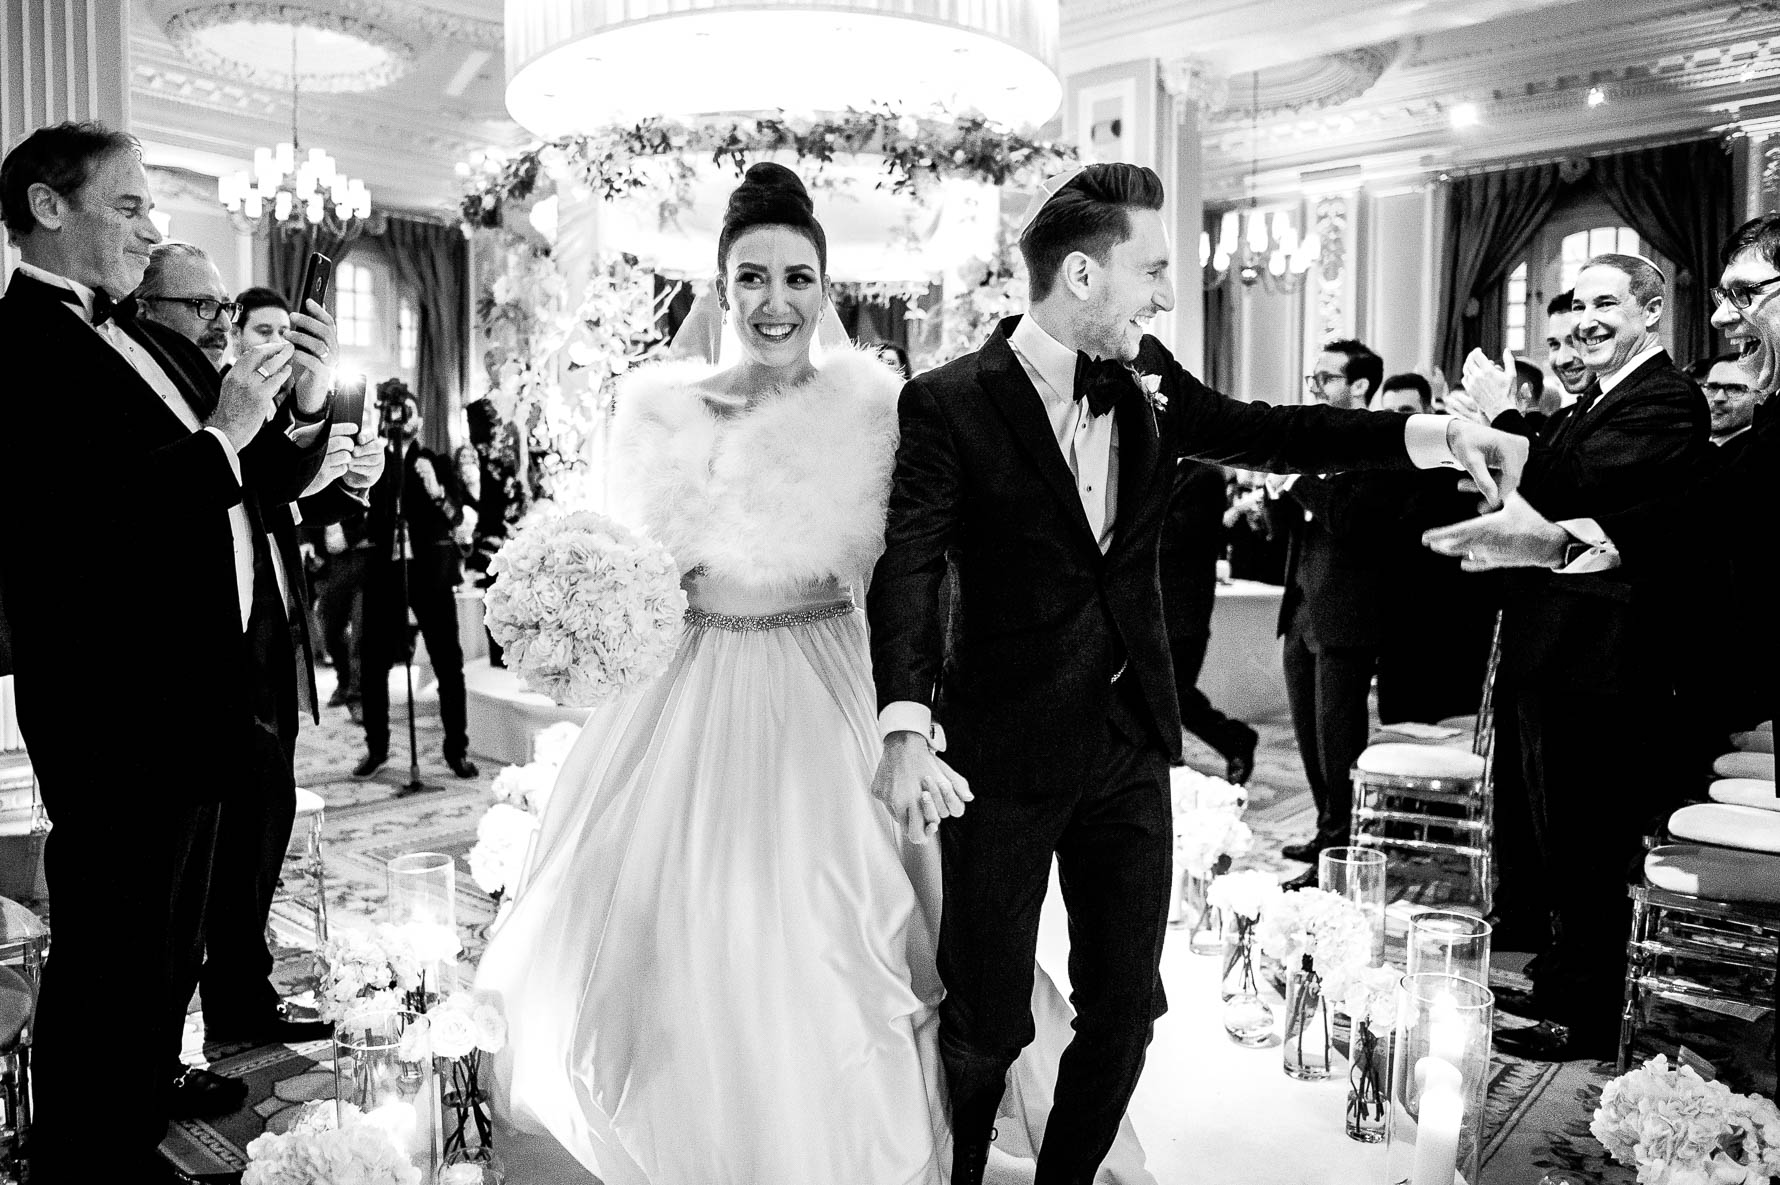 leaving wedding ceremony in black and white